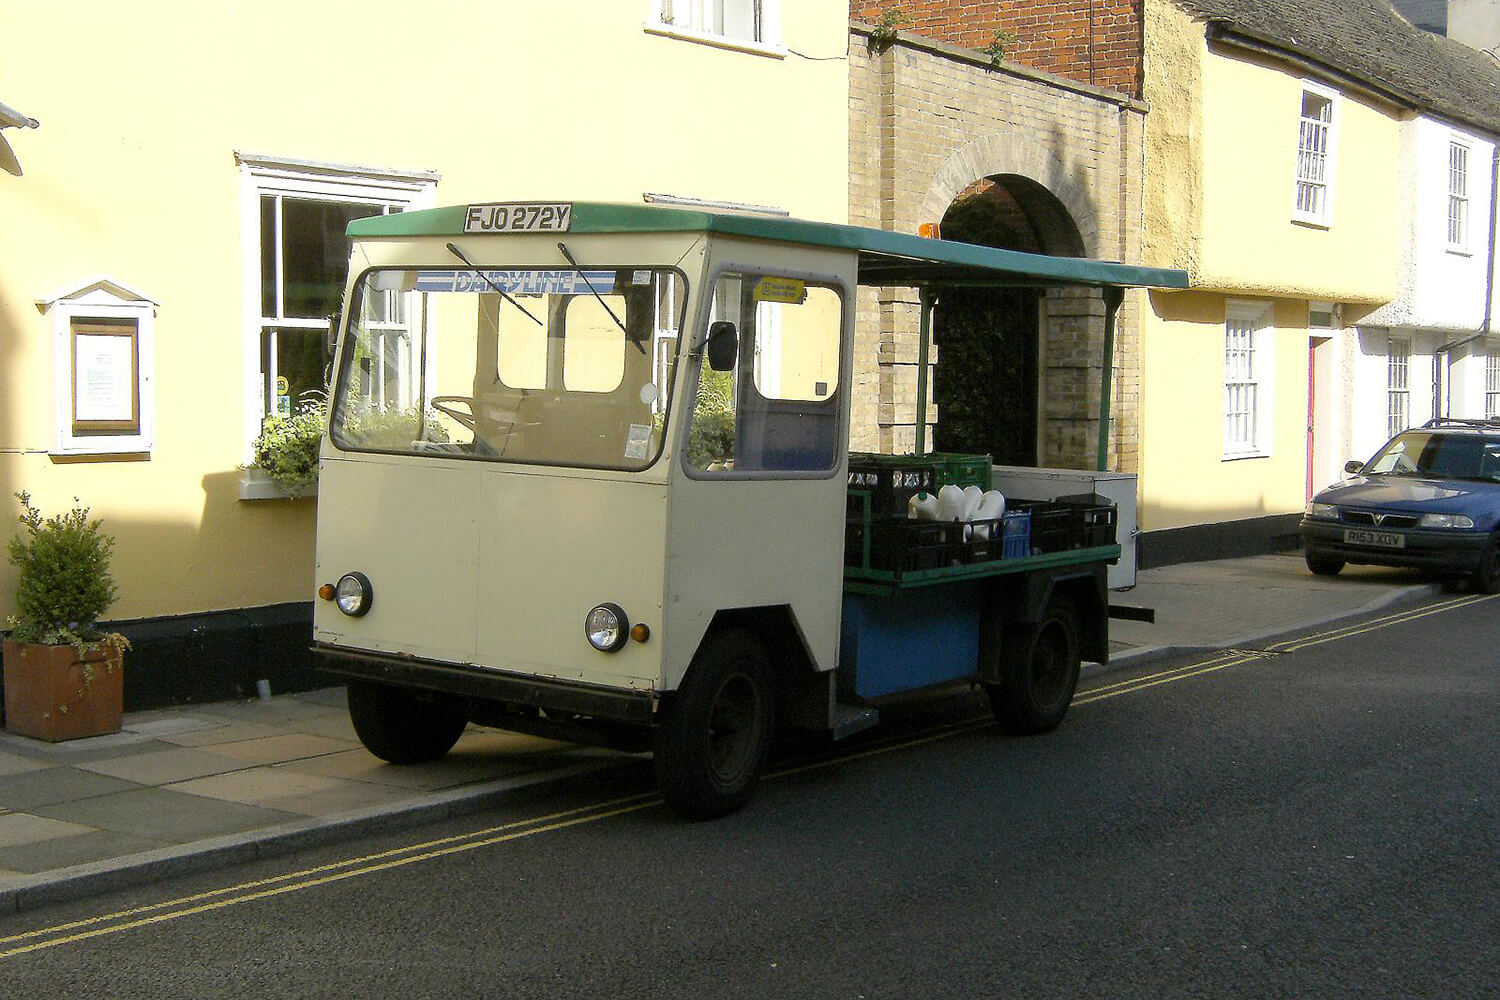 Vintage electric milk float / Flickr, Martin Pittett